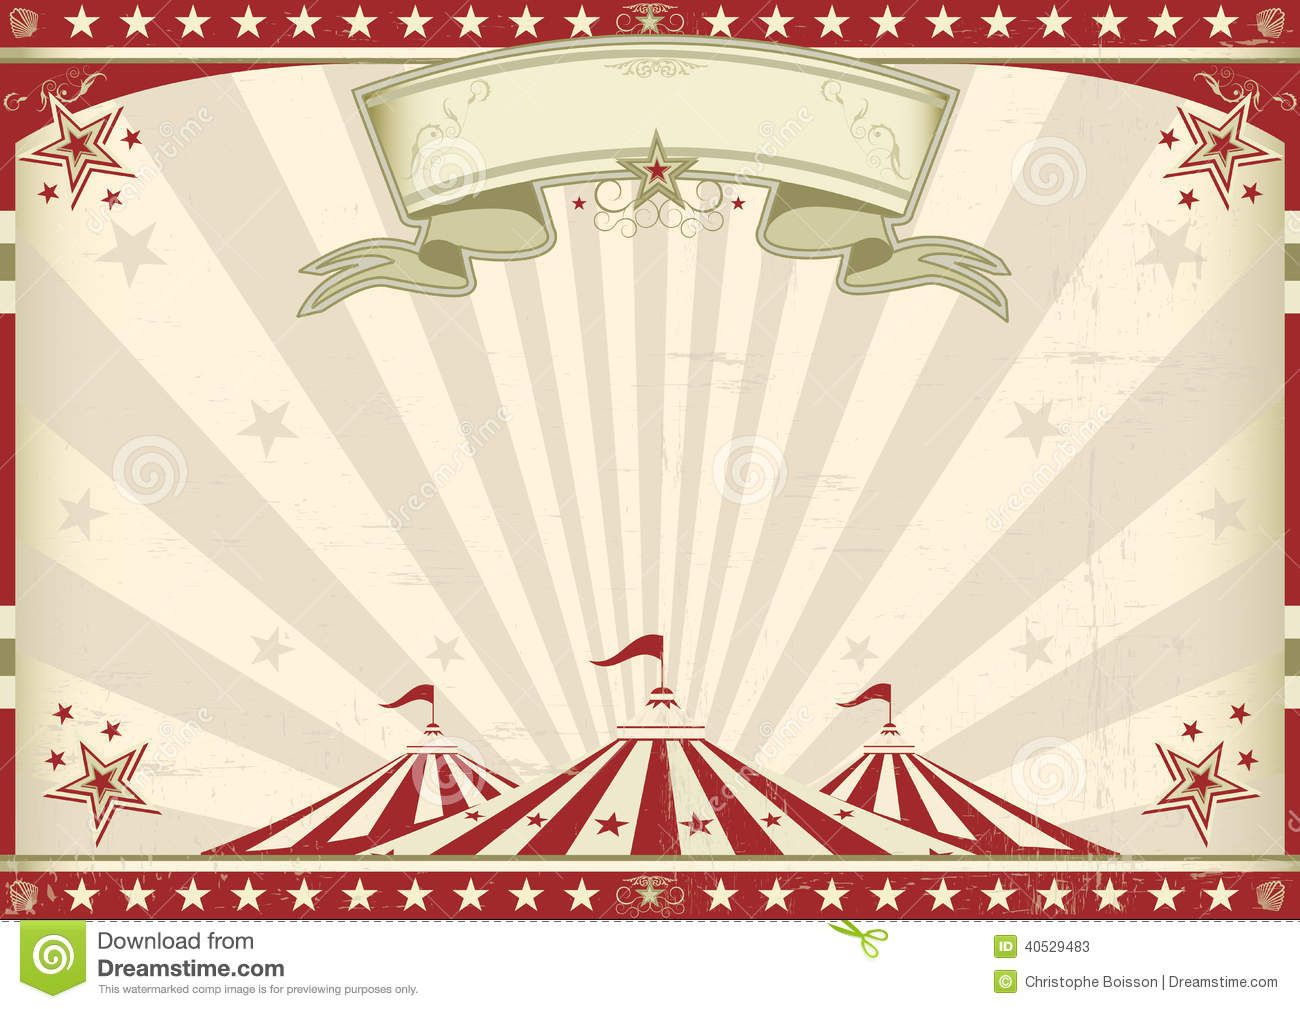 Horizontal Vintage Circus - Download From Over 30 Million High ...